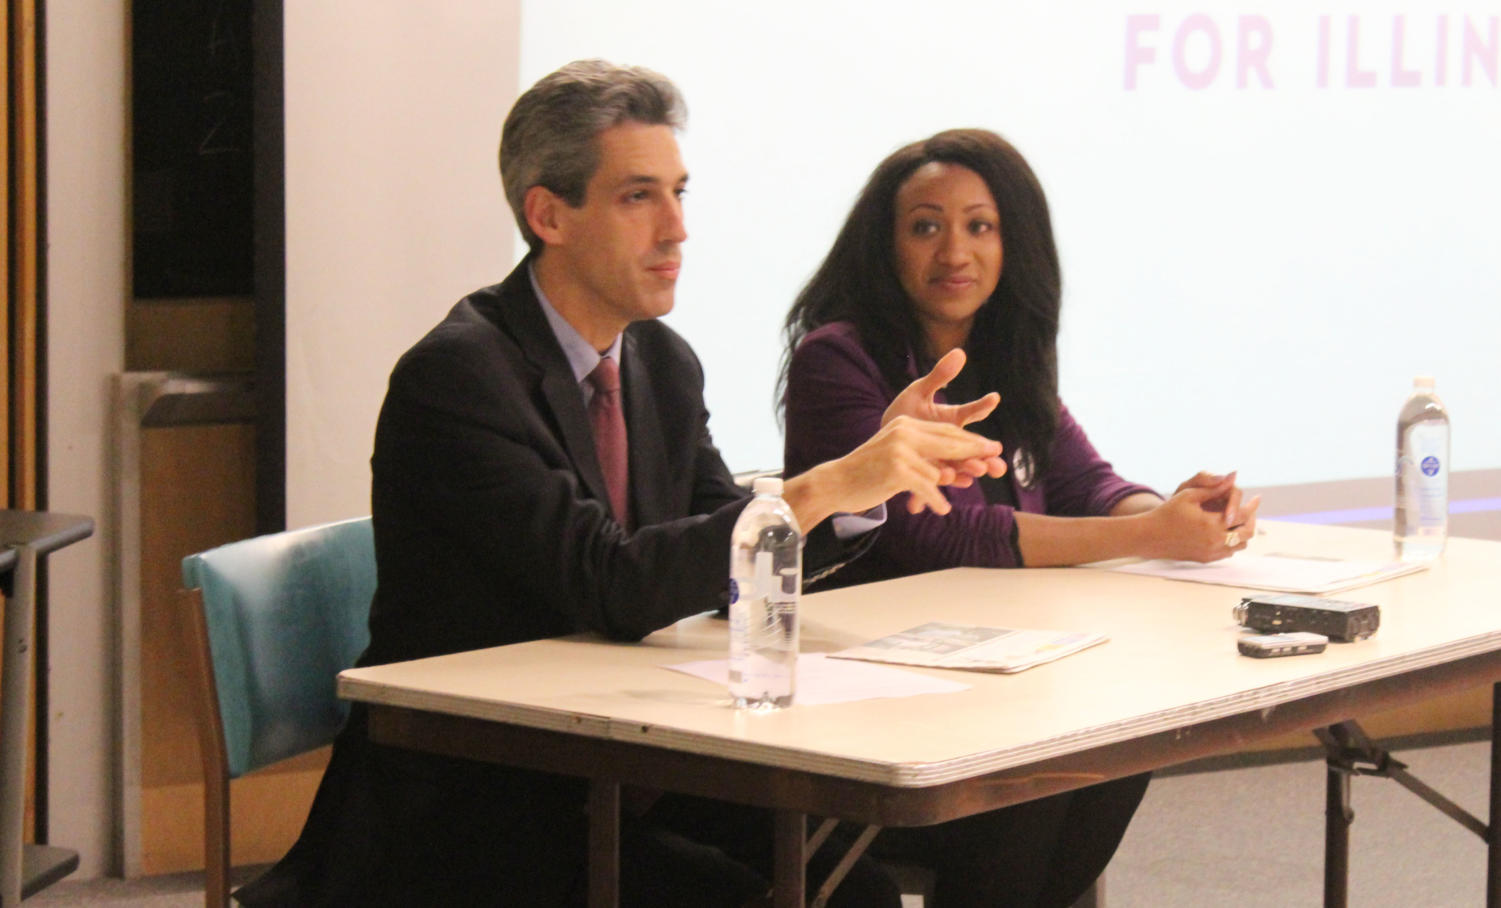 Senator Daniel Biss and State Representative and Western alumna Litesa Wallace prepare to share insight on political issues at Thursday's meet and greet in Morgan Hall.